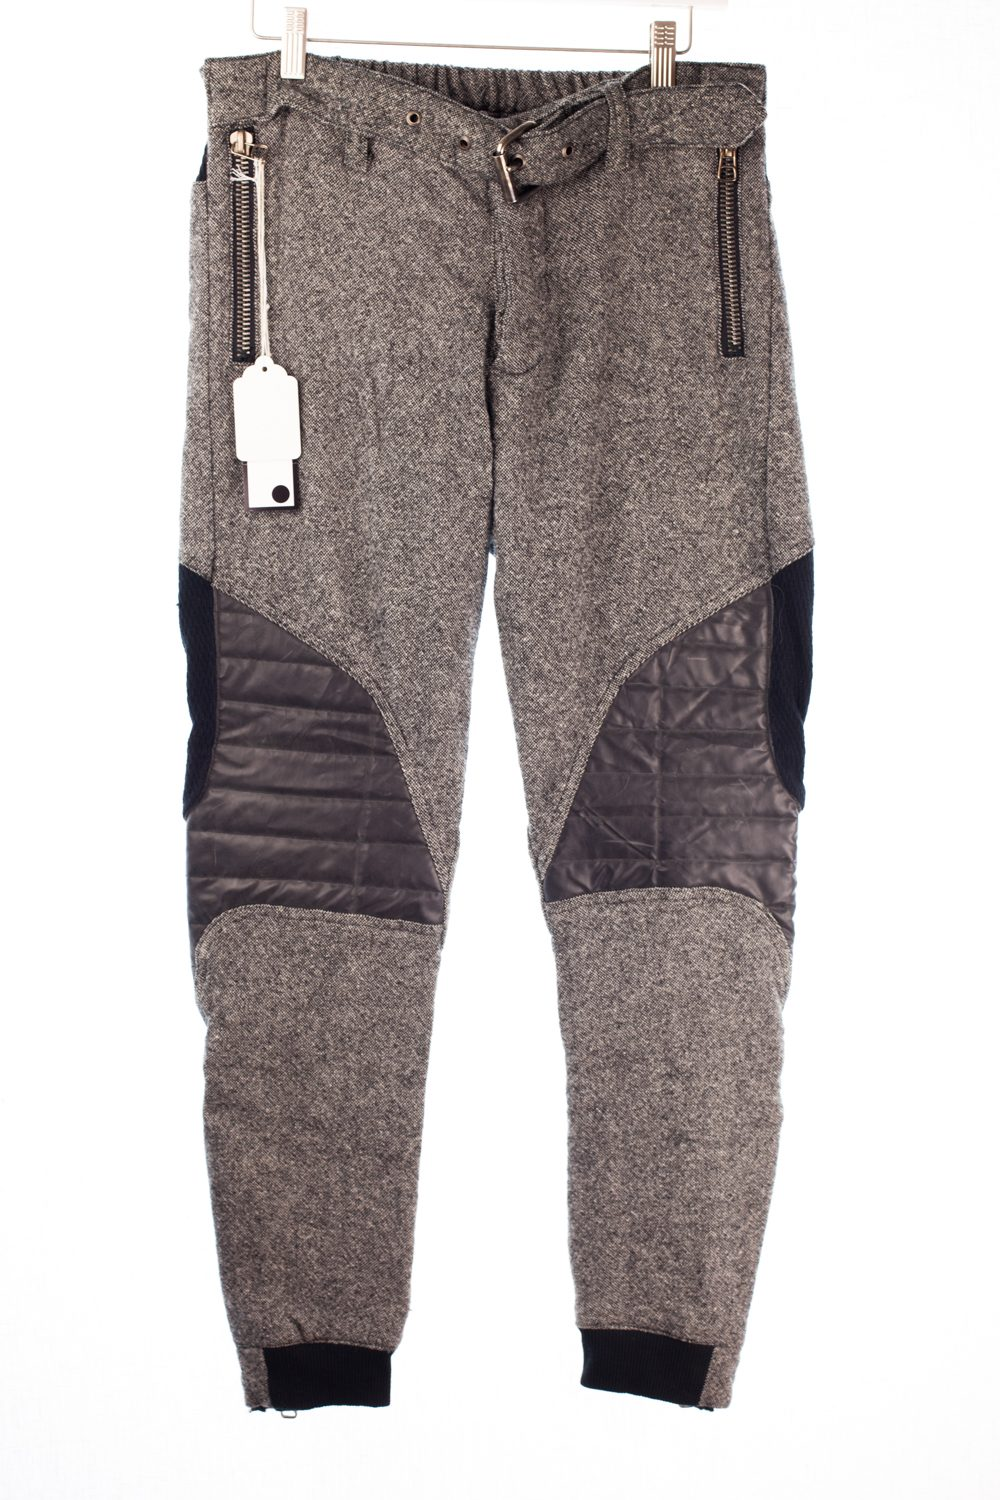 NWT GL1 Moto Pant Donegal